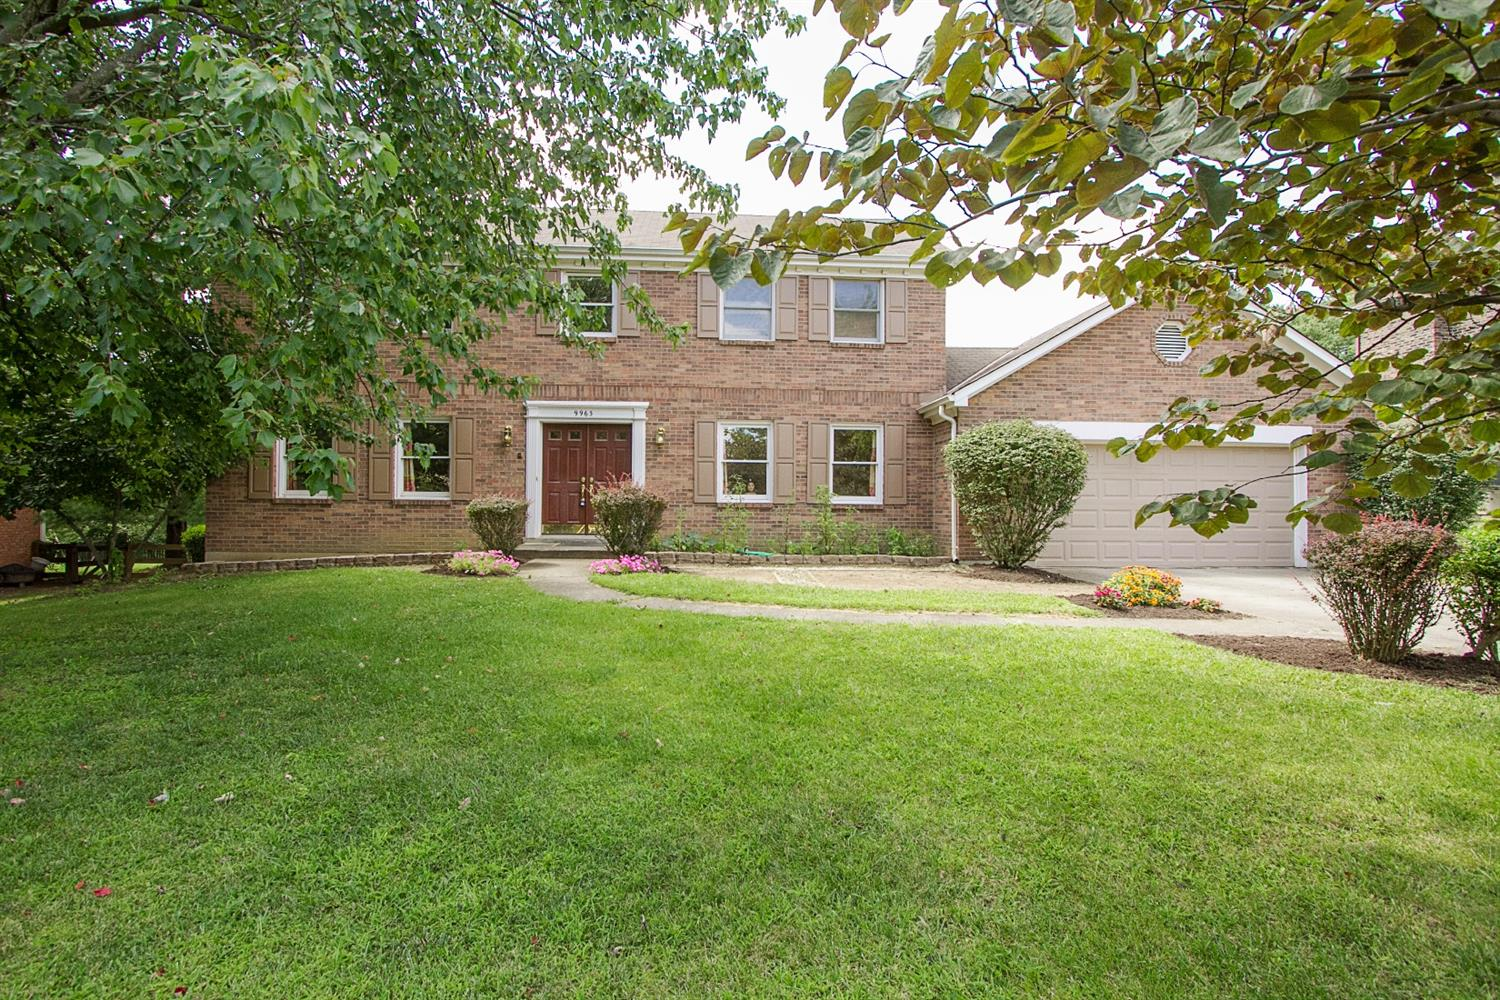 9963 Meadow Hills Drive, West Chester, OH 45241